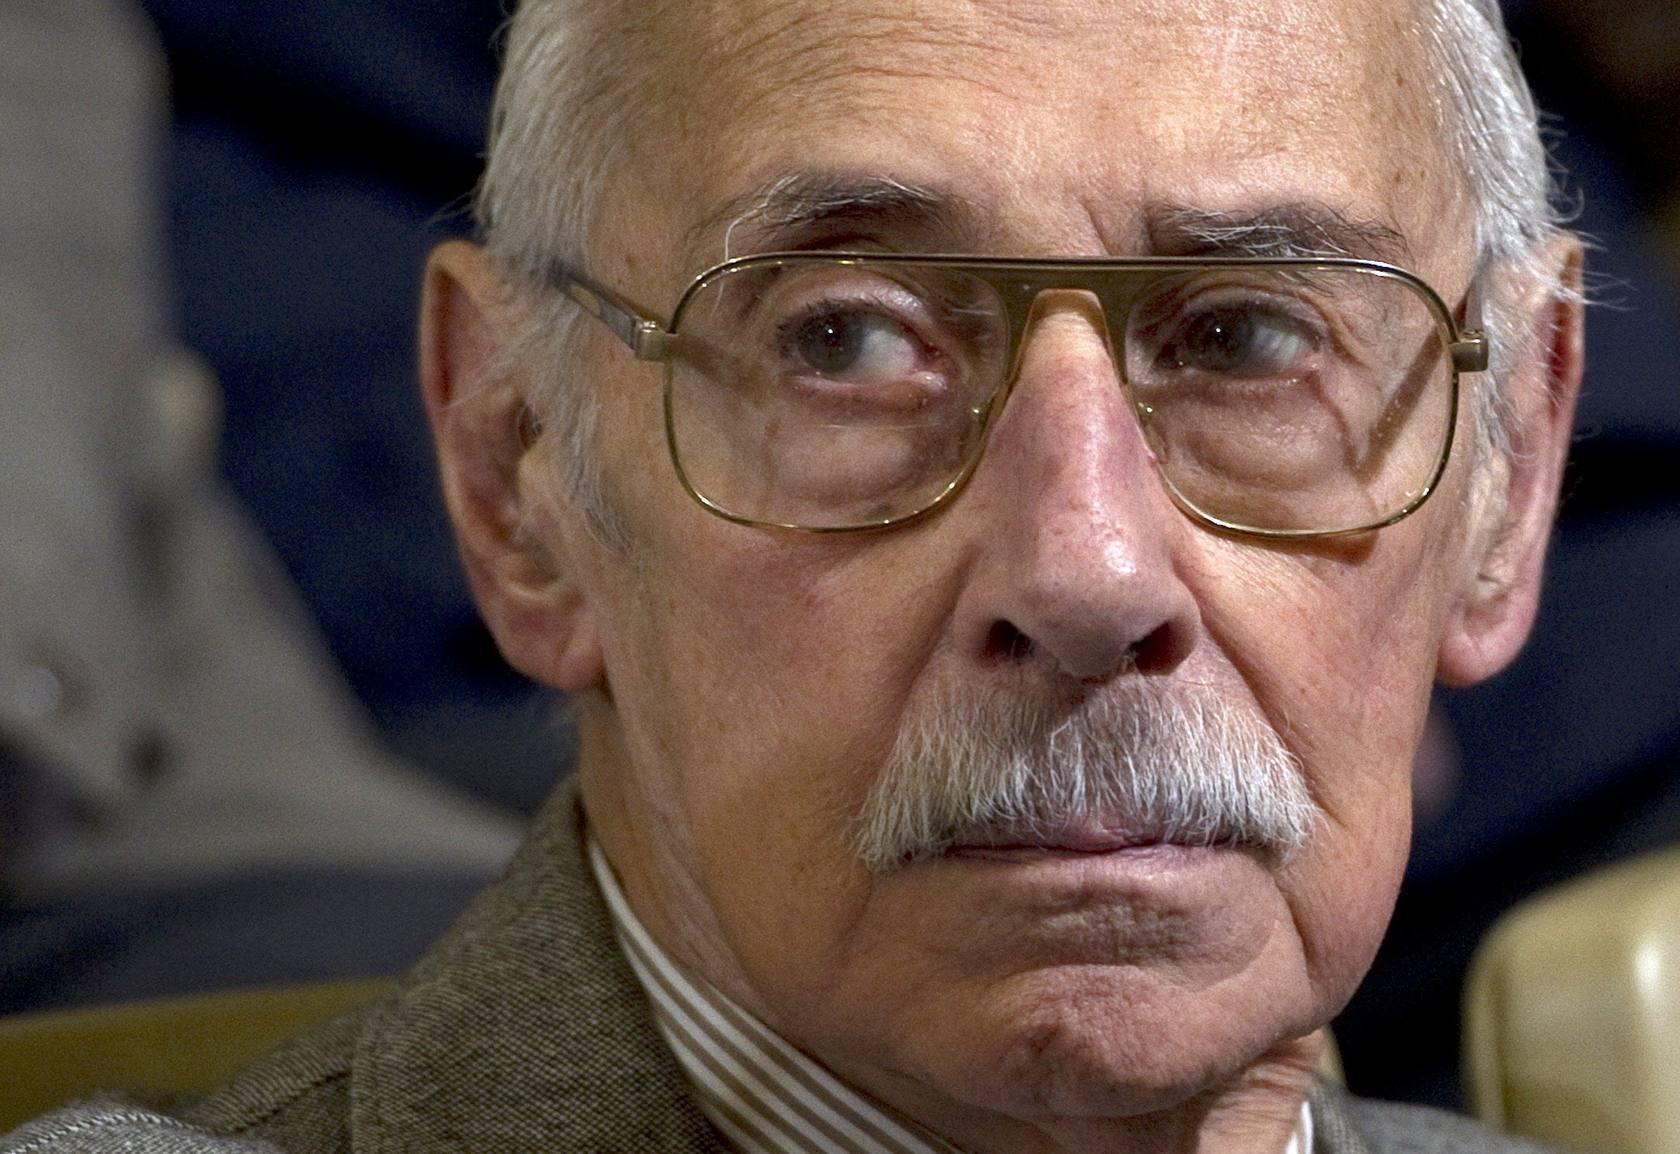 Muere el exdictador argentino Jorge Videla